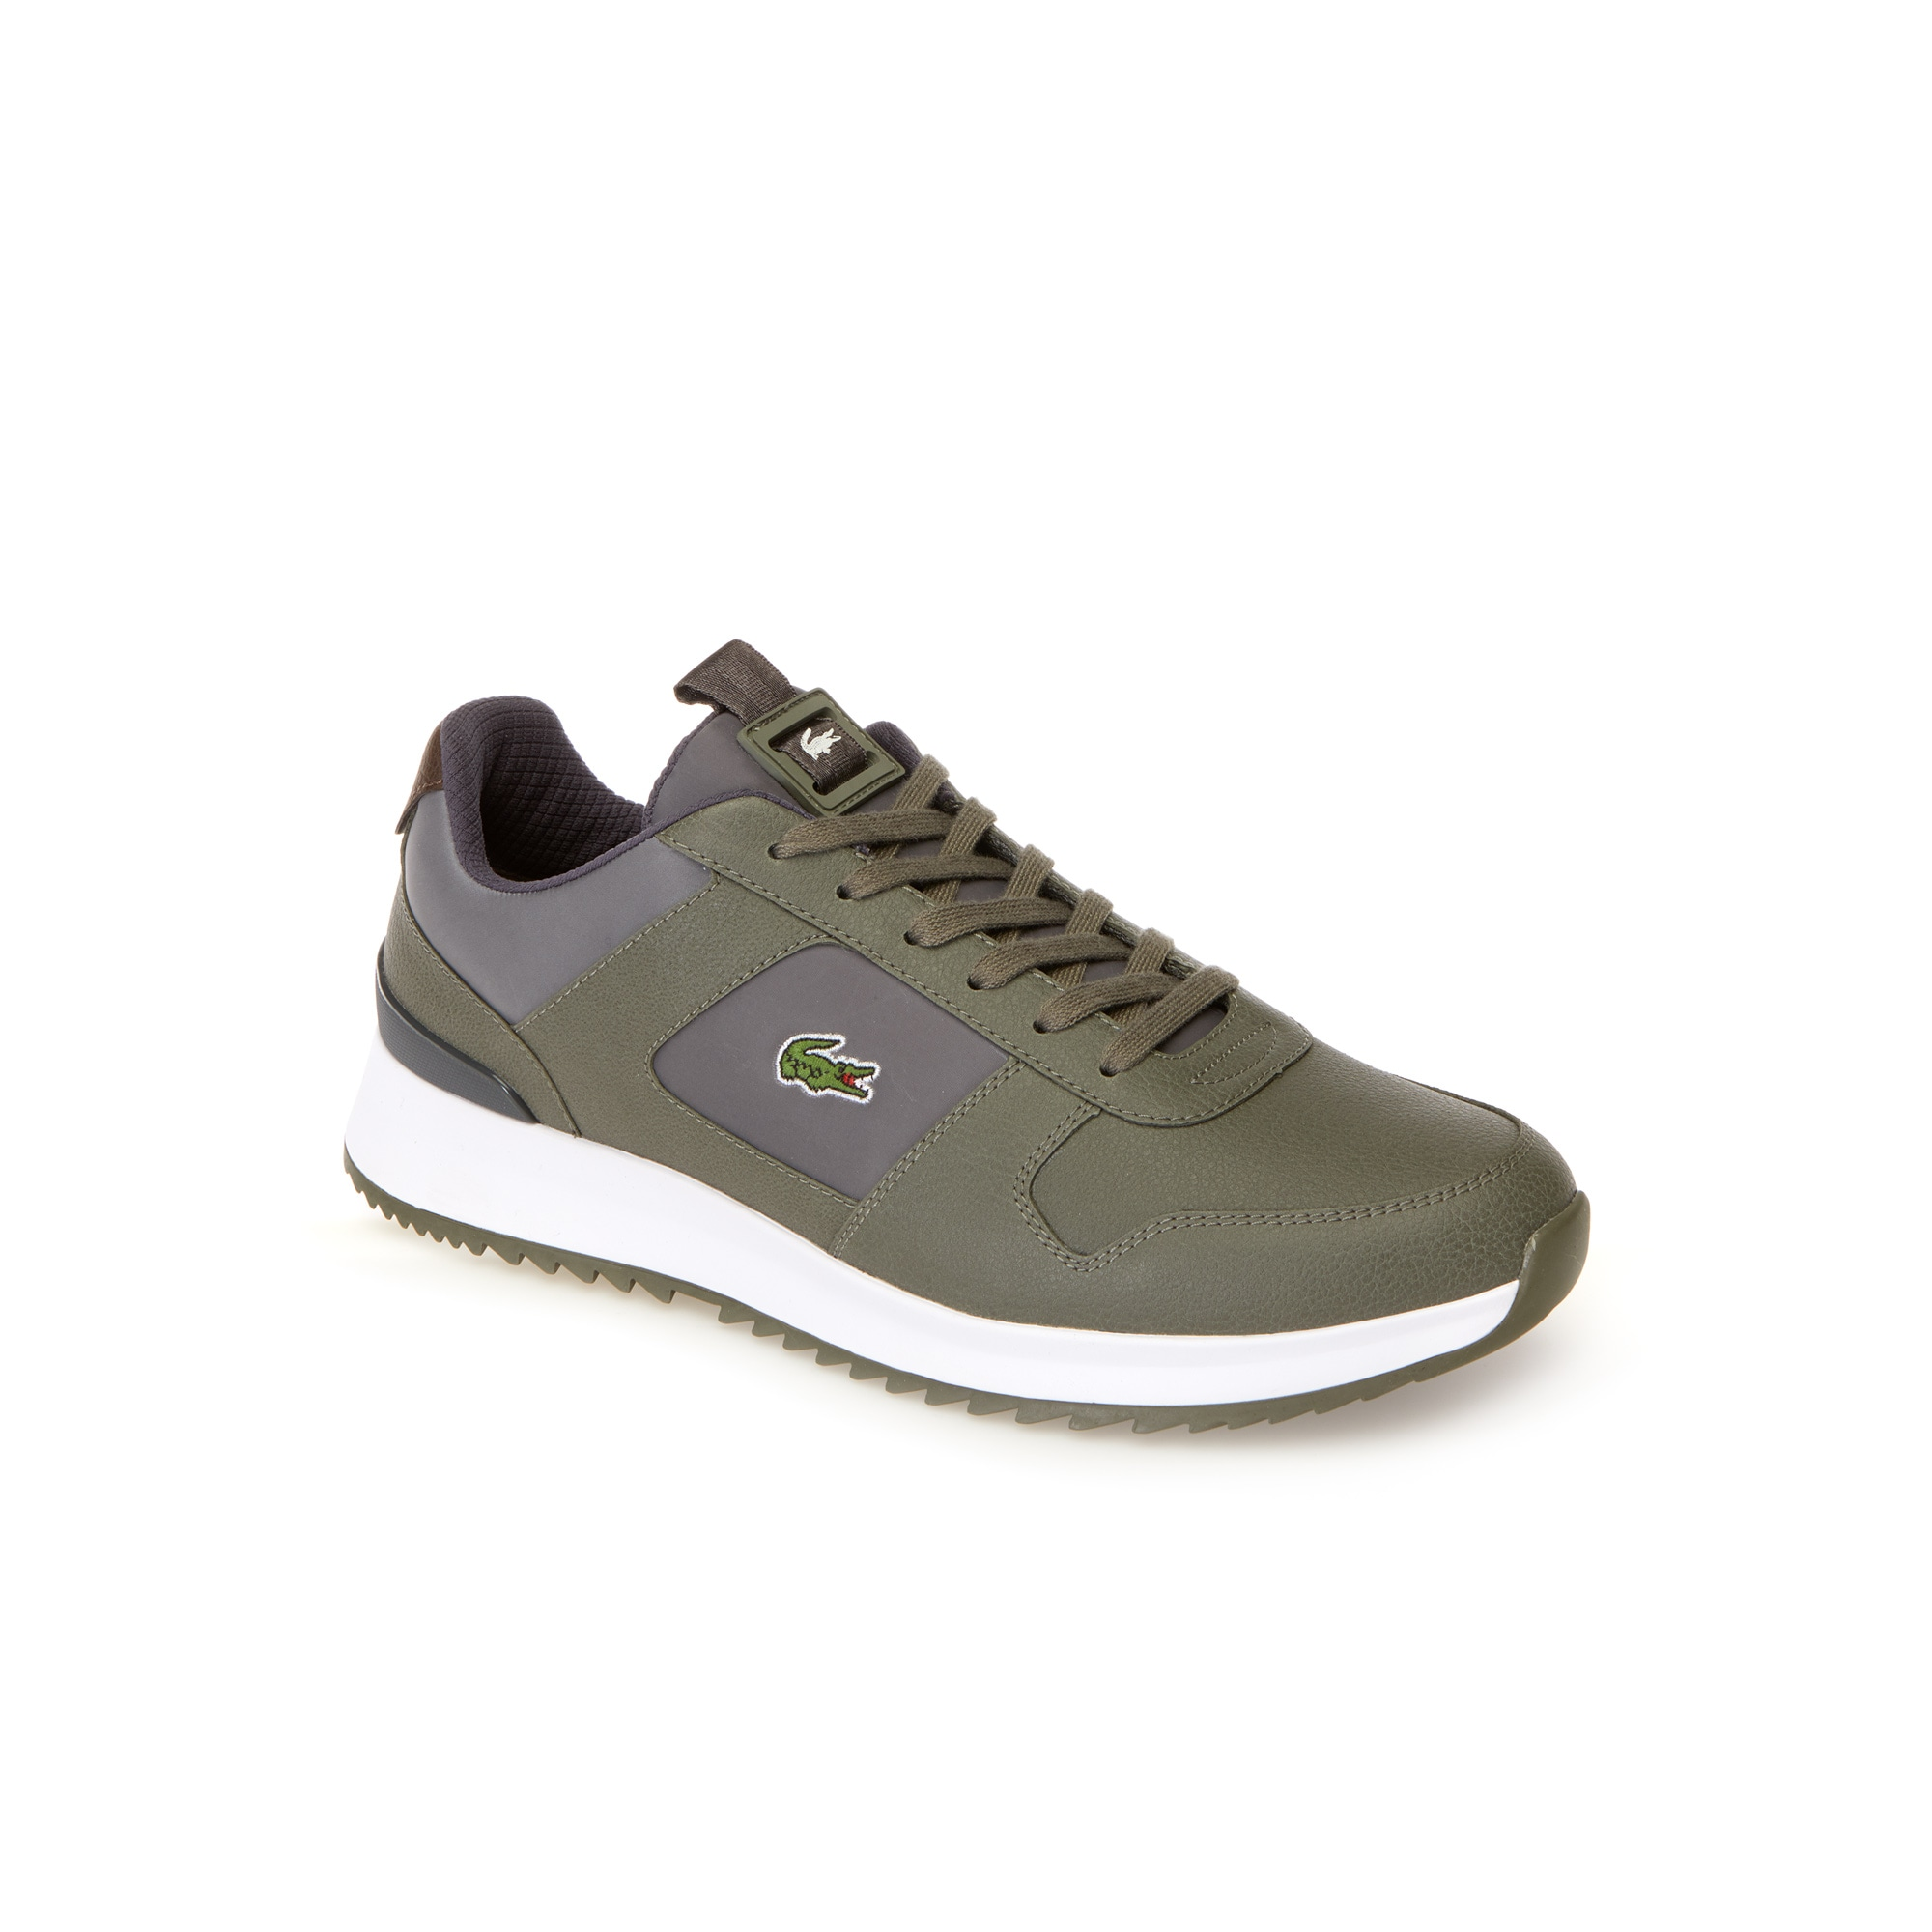 Chaussures homme   Collection Homme   LACOSTE cdd6c5215fe6